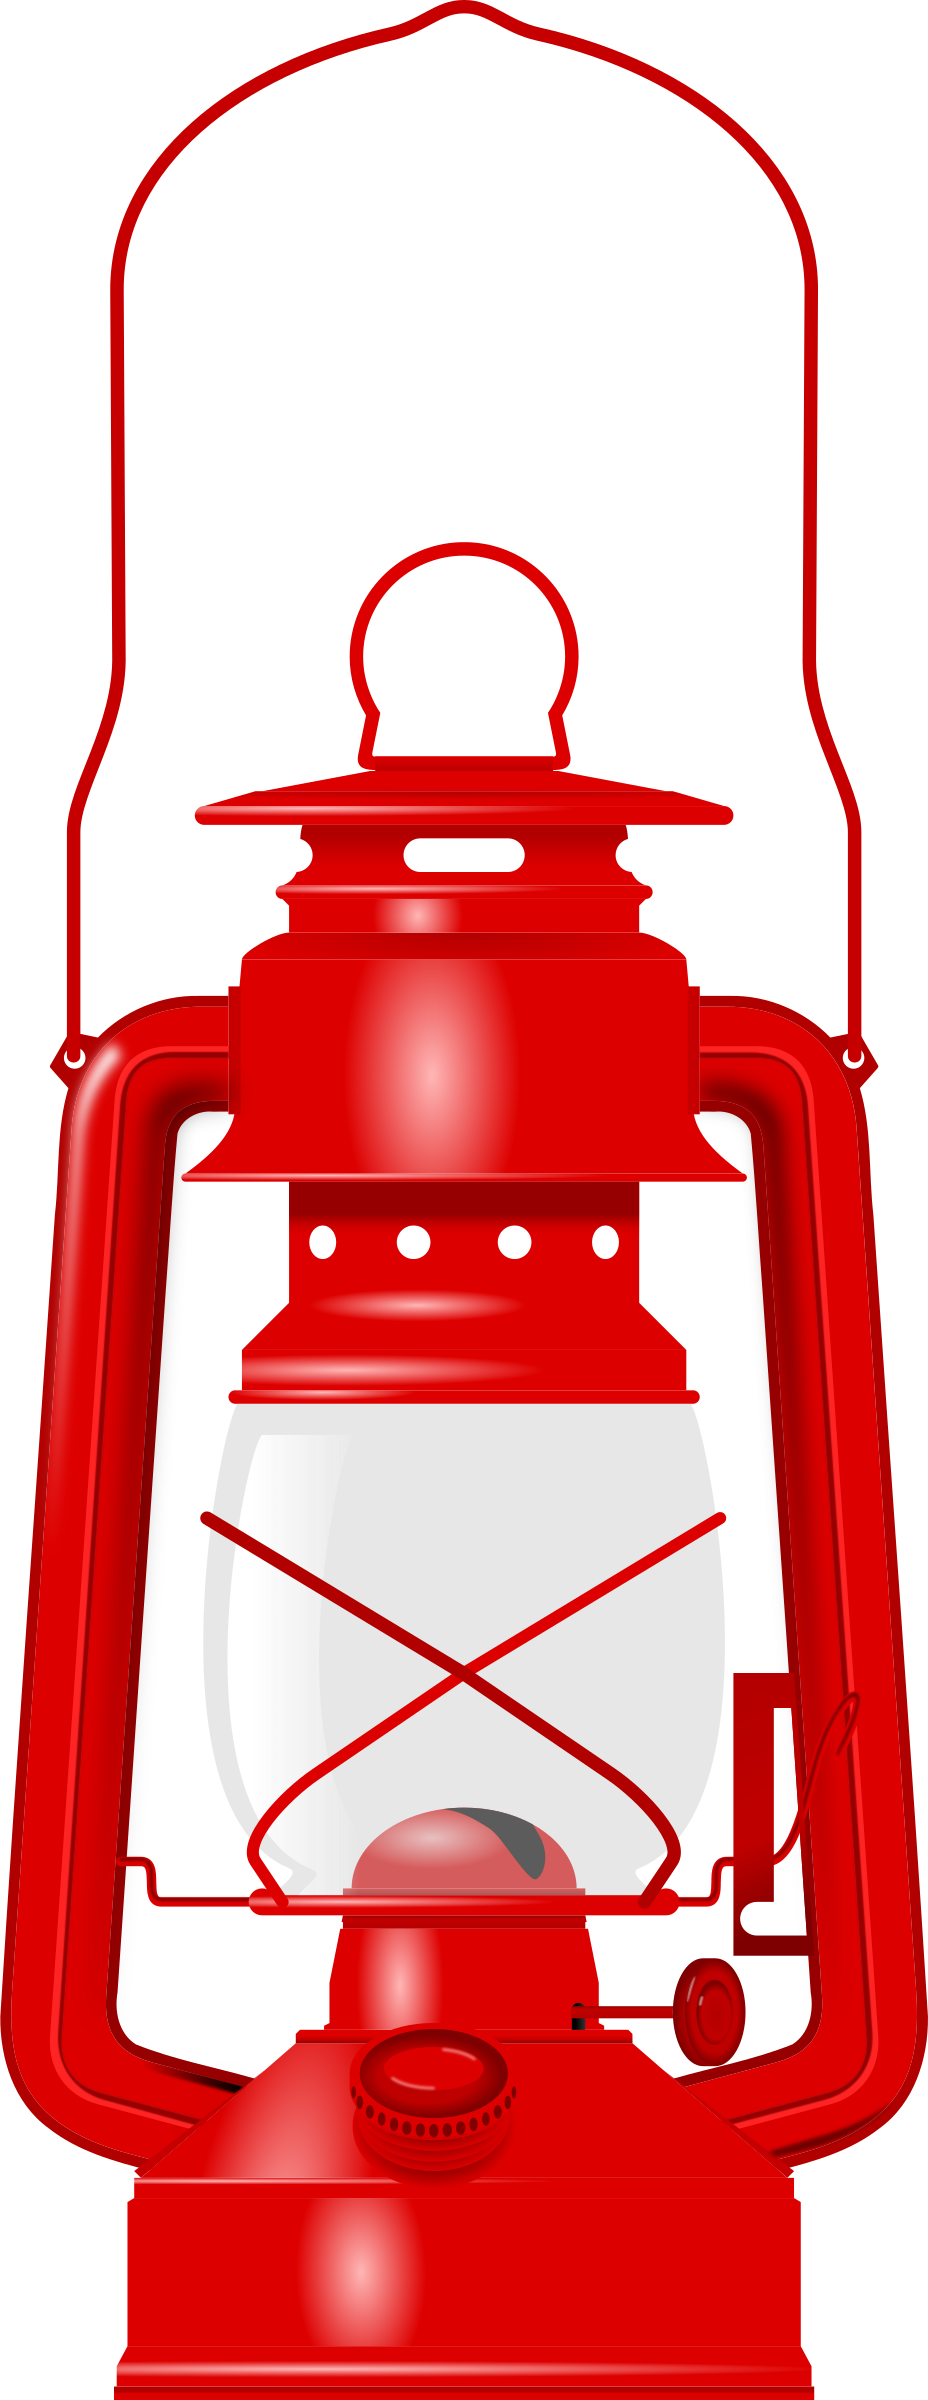 Kerosene lamp clipart - Clipground for Lamp Clipart Png  146hul